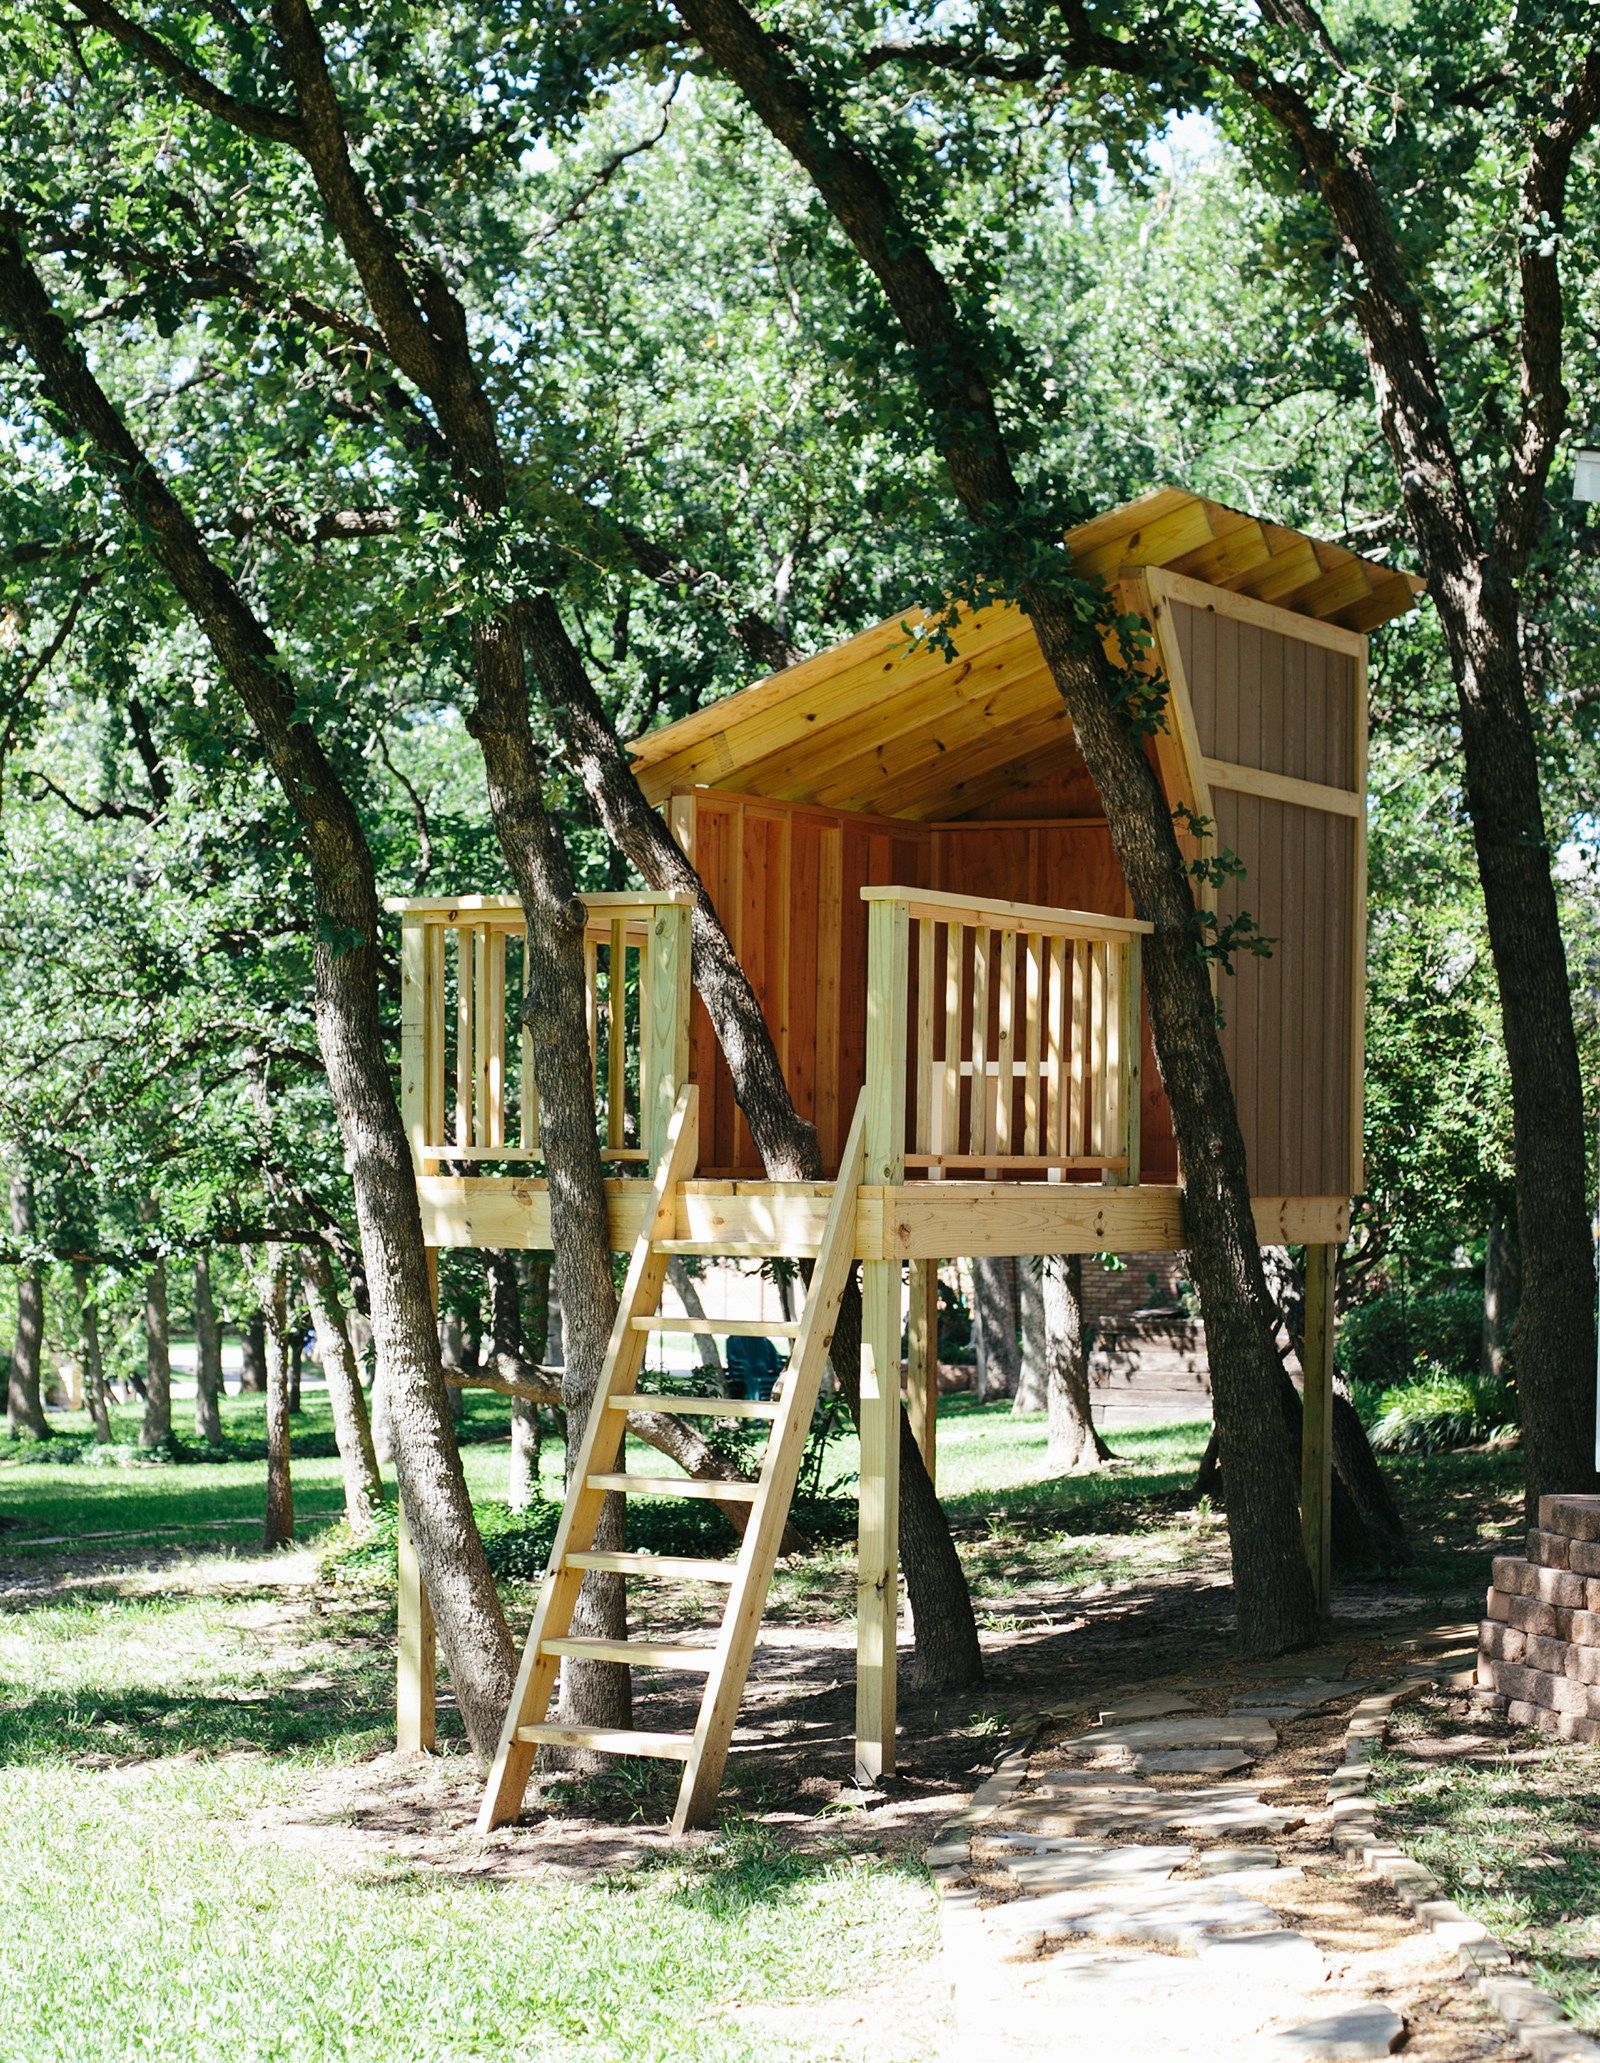 Building a Treehouse | Simple tree house, Tree house plans ...